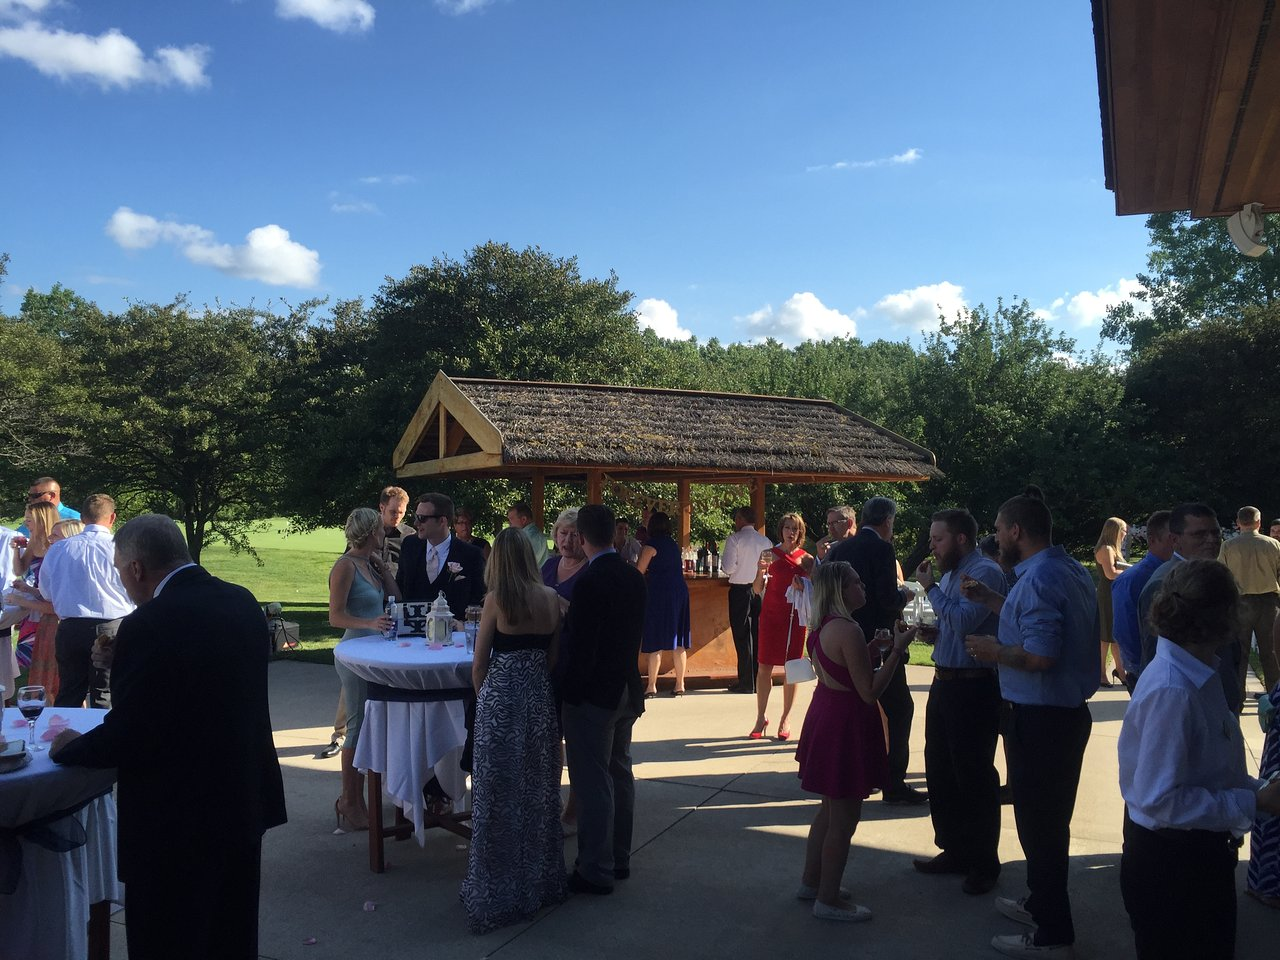 outdoor patio with bar service from the